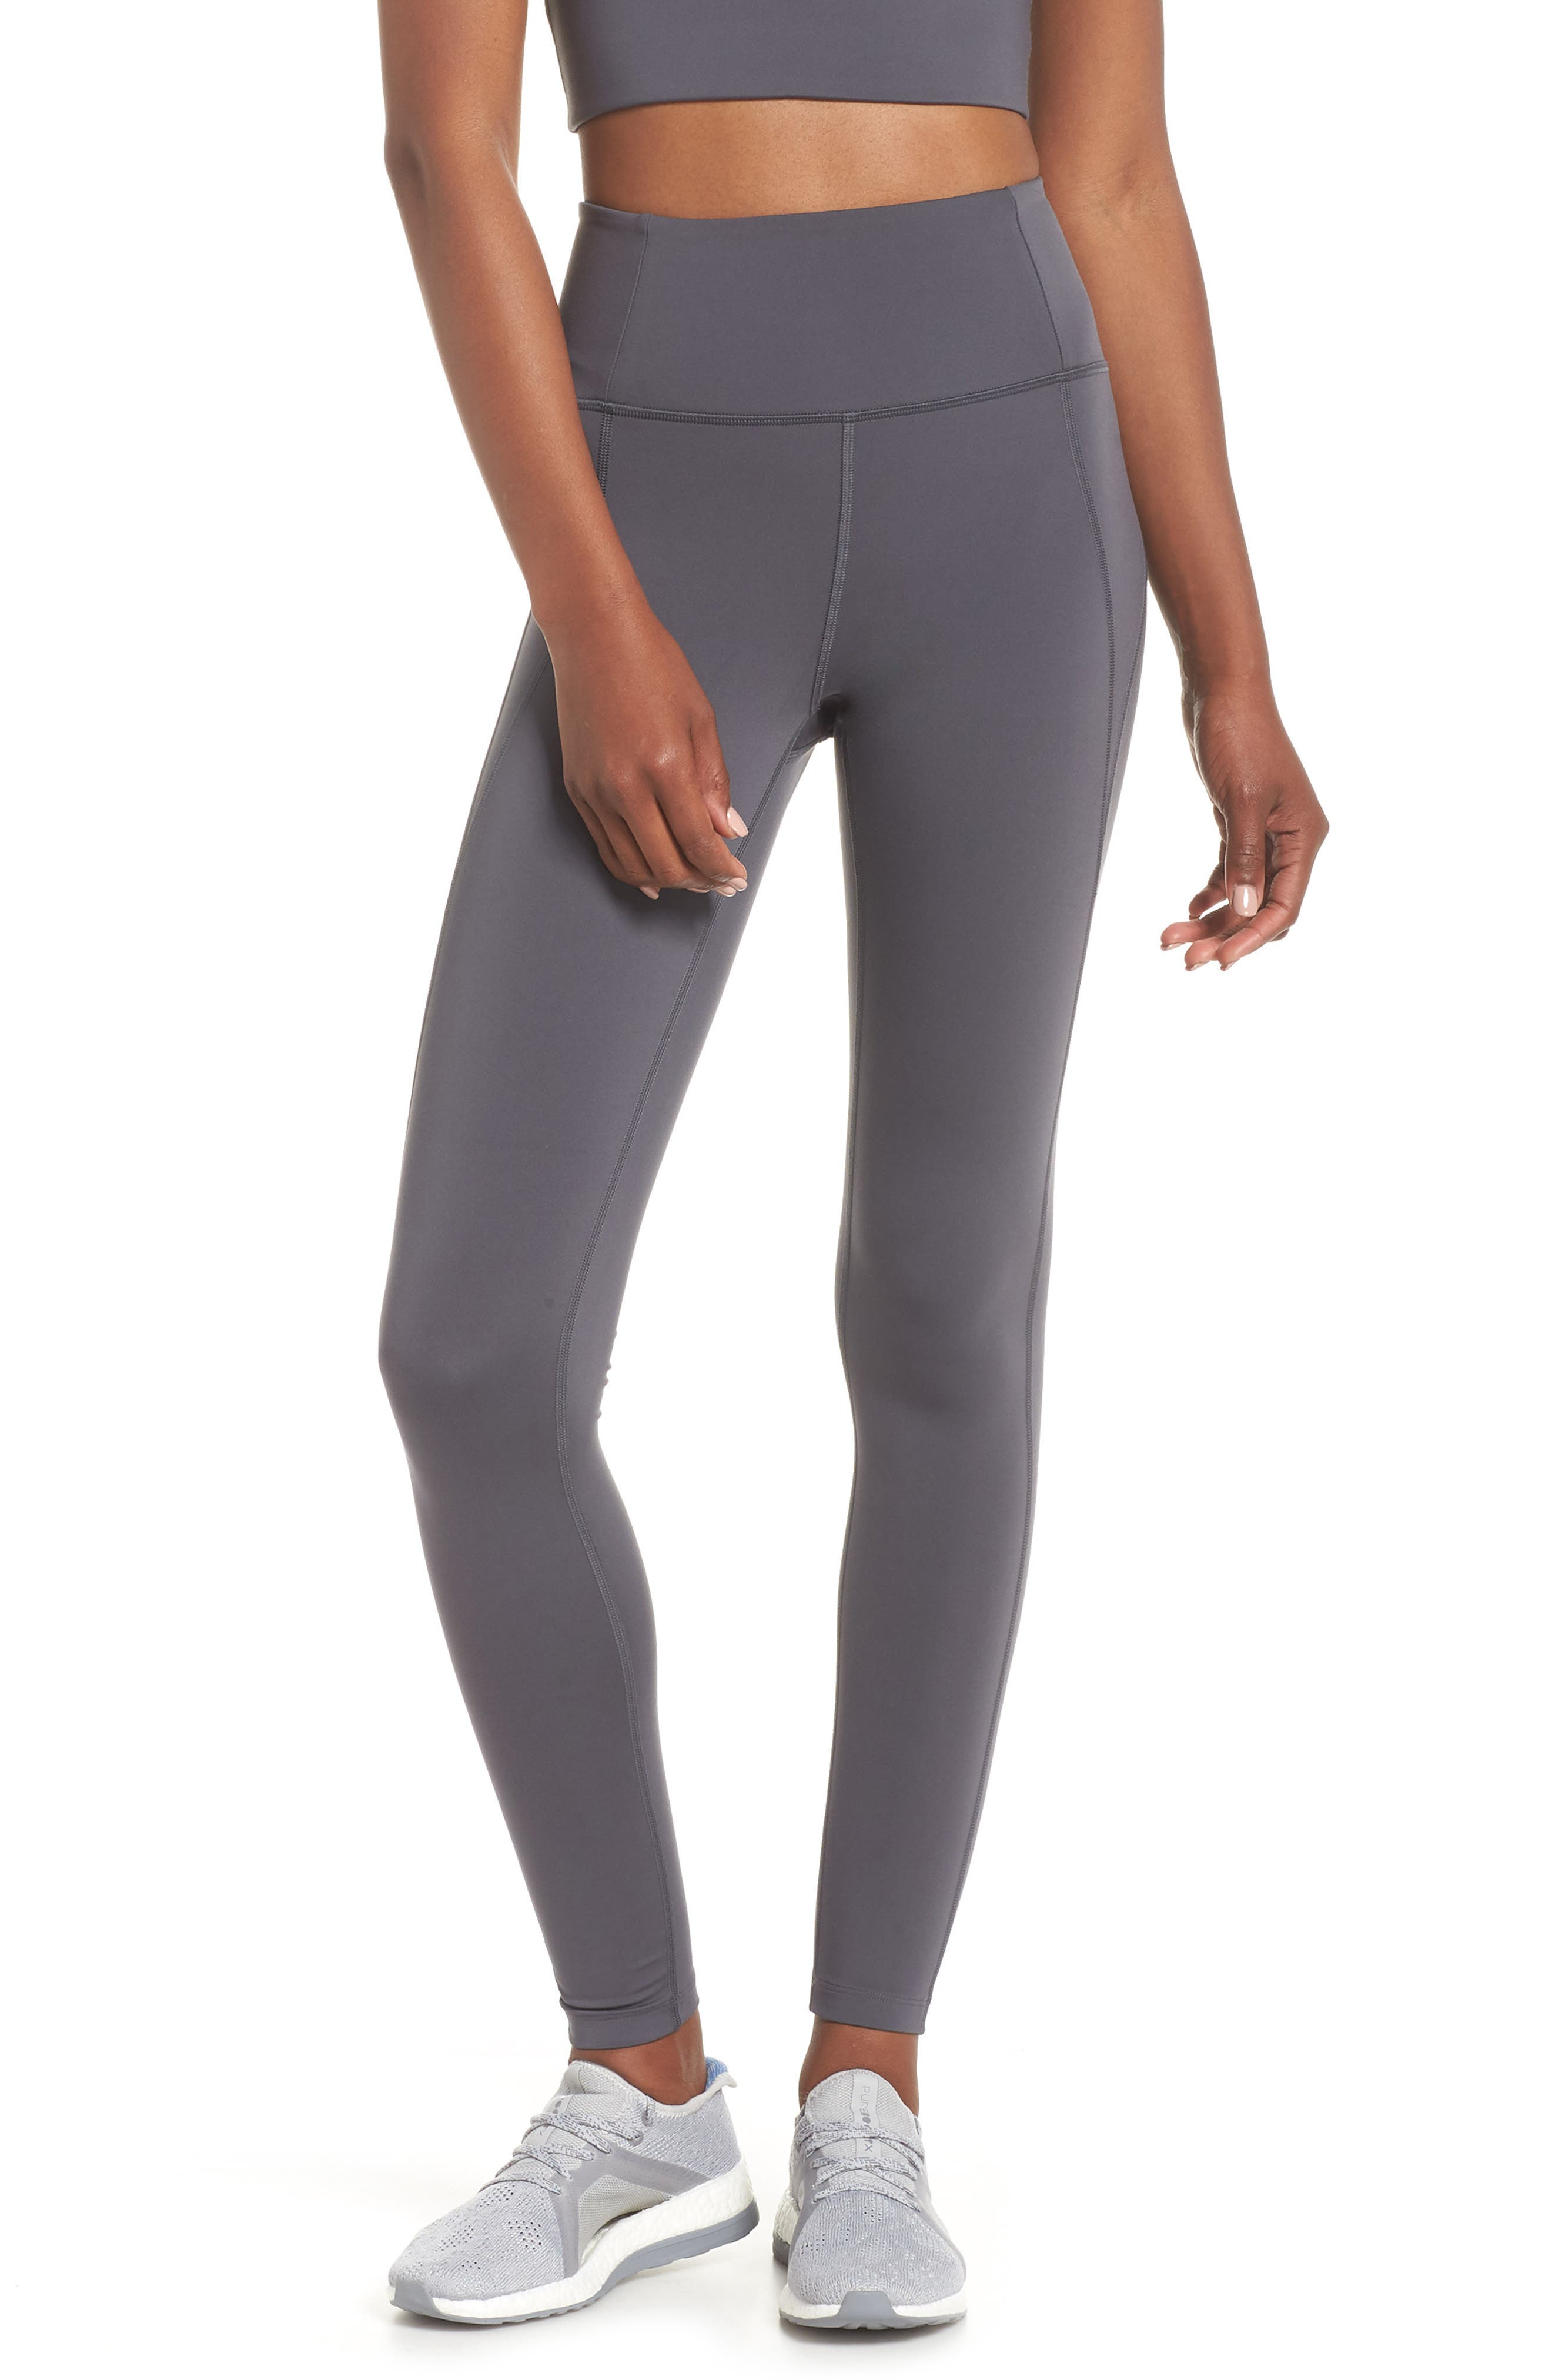 Girlfriend Collective High Waist Full Length Leggings, Grey